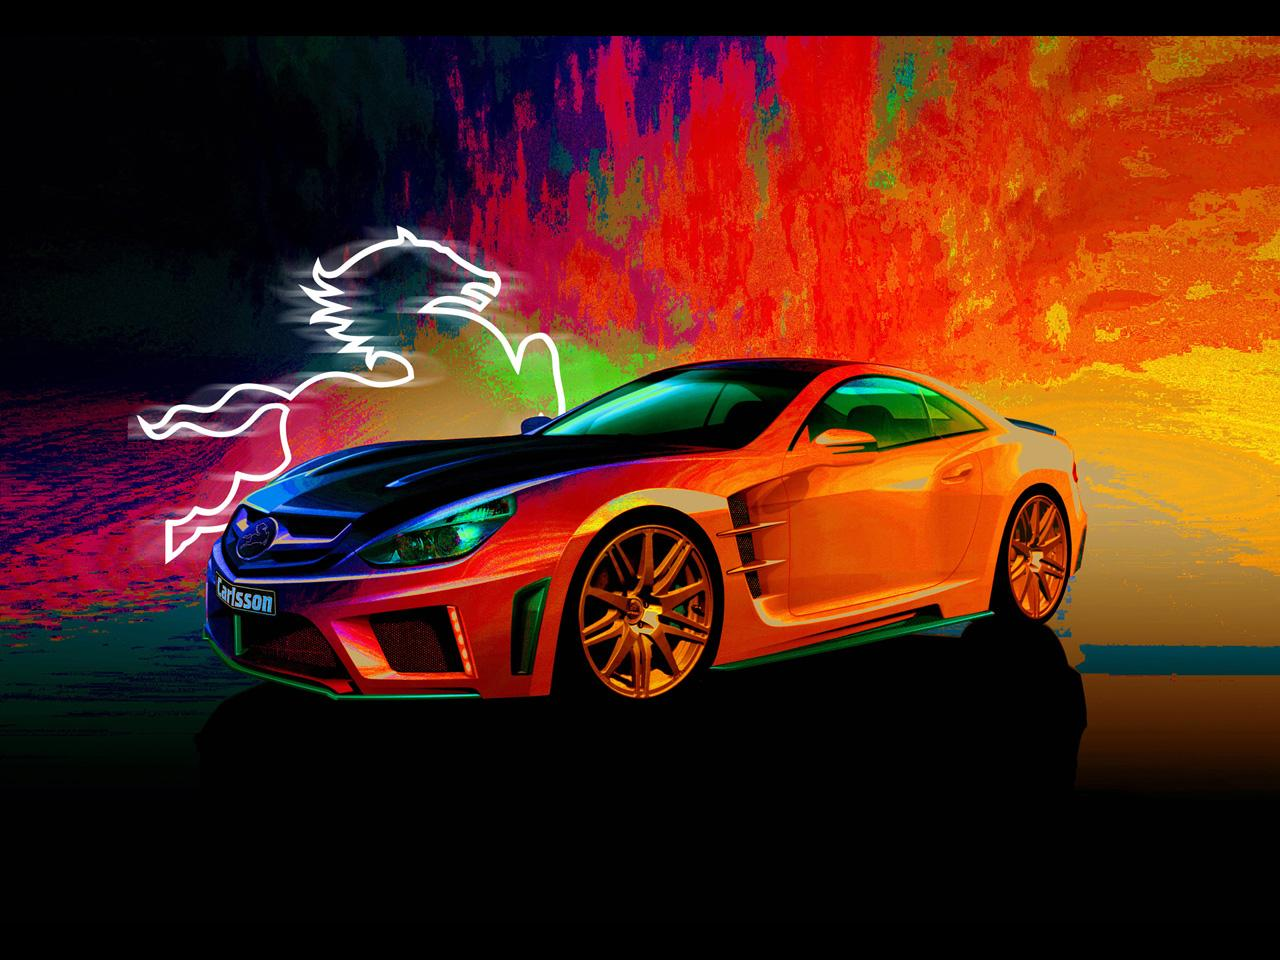 Awesome Car Wallpapers WallpaperSafari - Awesome fast cars